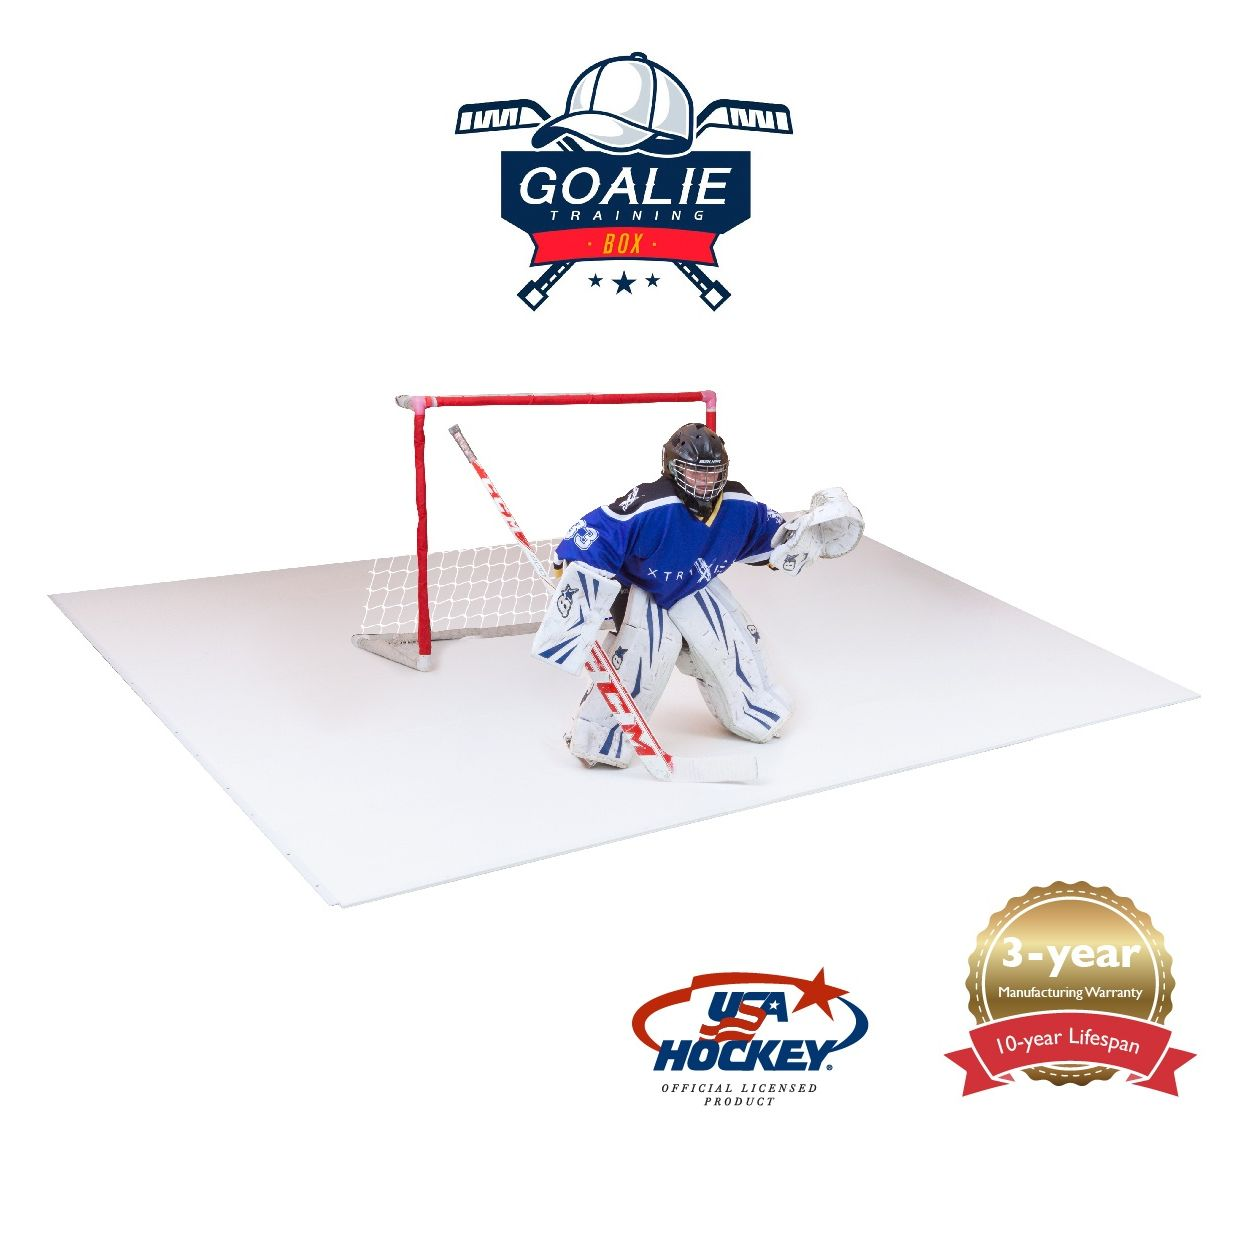 Goalie Training box 9.5 x 12.7 feet